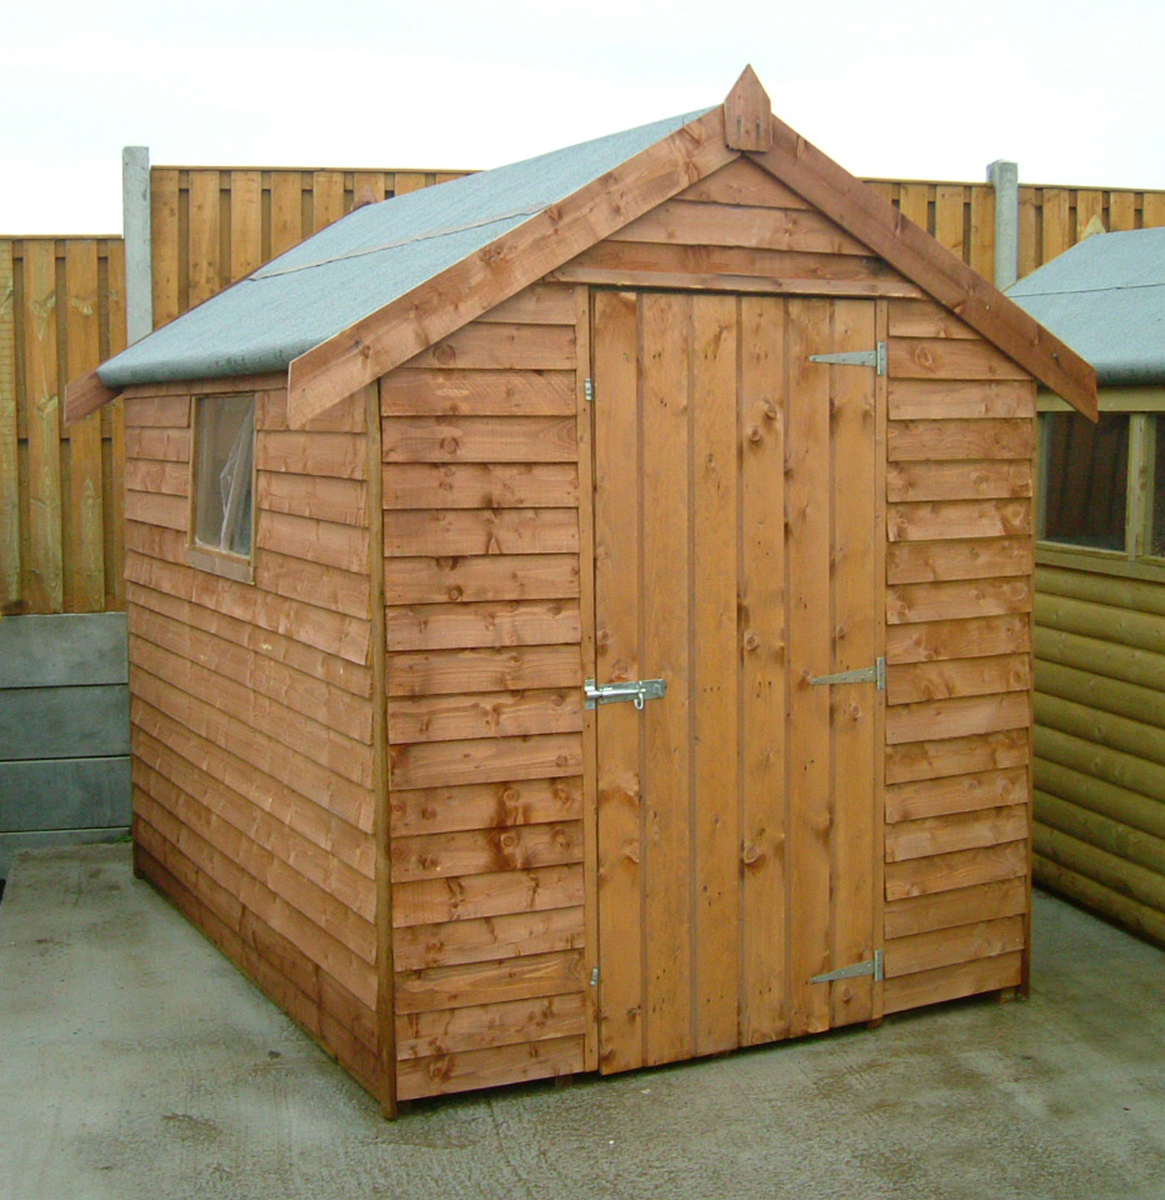 Garden Sheds Madison Wi garden sheds gorey - house decoration design ideas is the new way